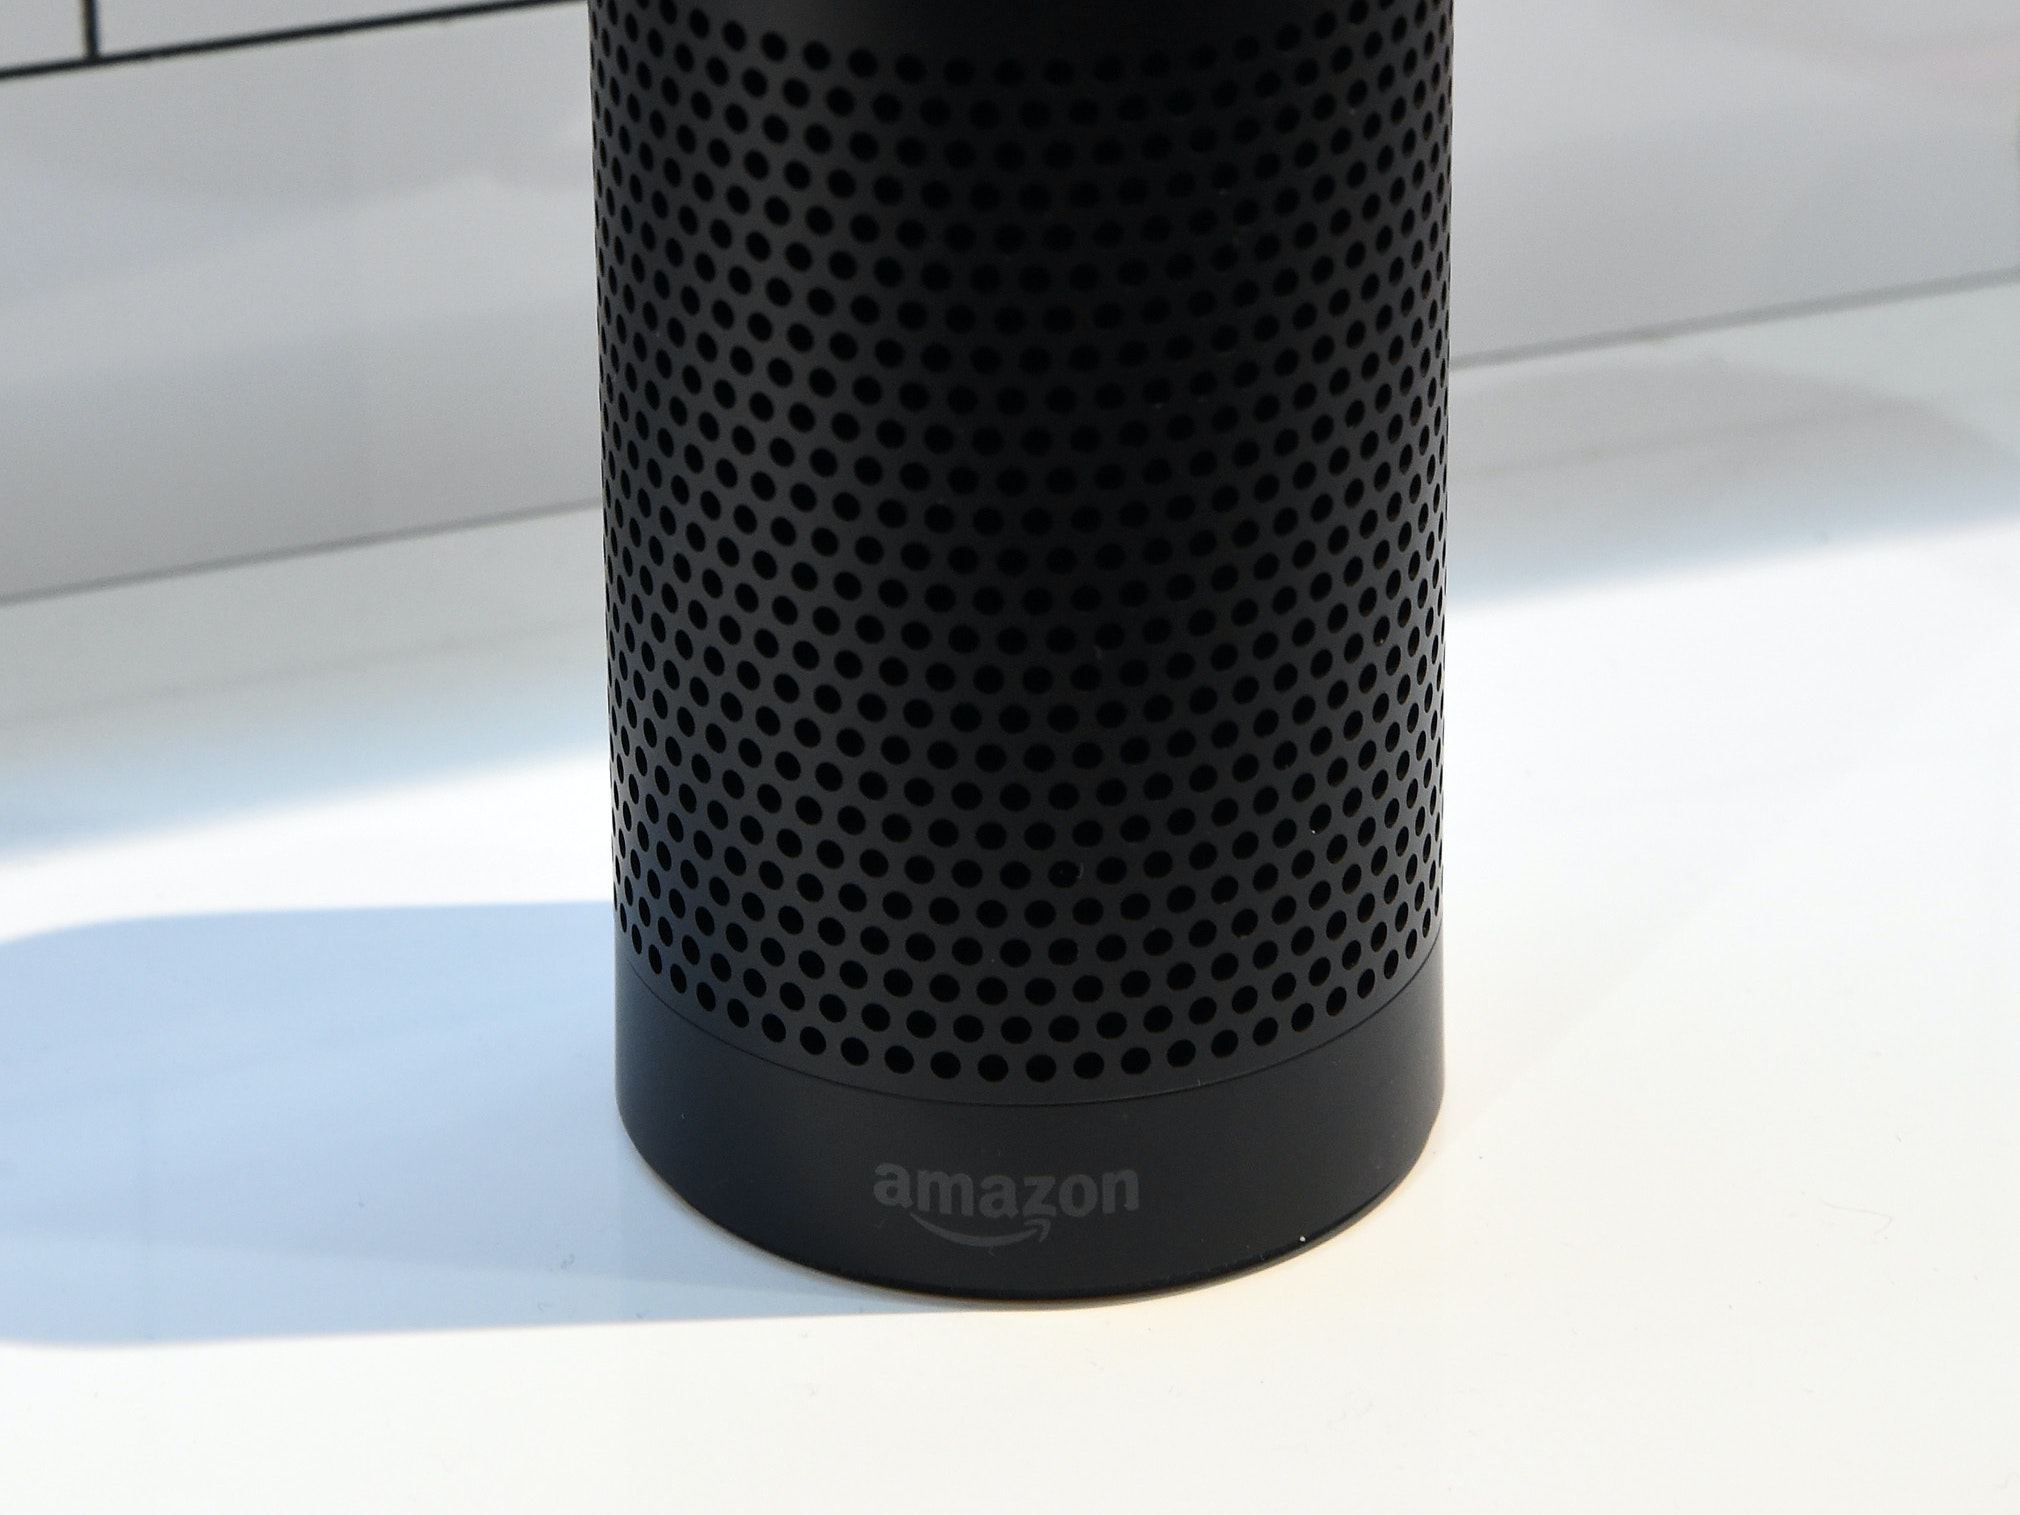 Amazon CEO Jeff Bezos Says 'Star Trek' Inspired Alexa and Echo